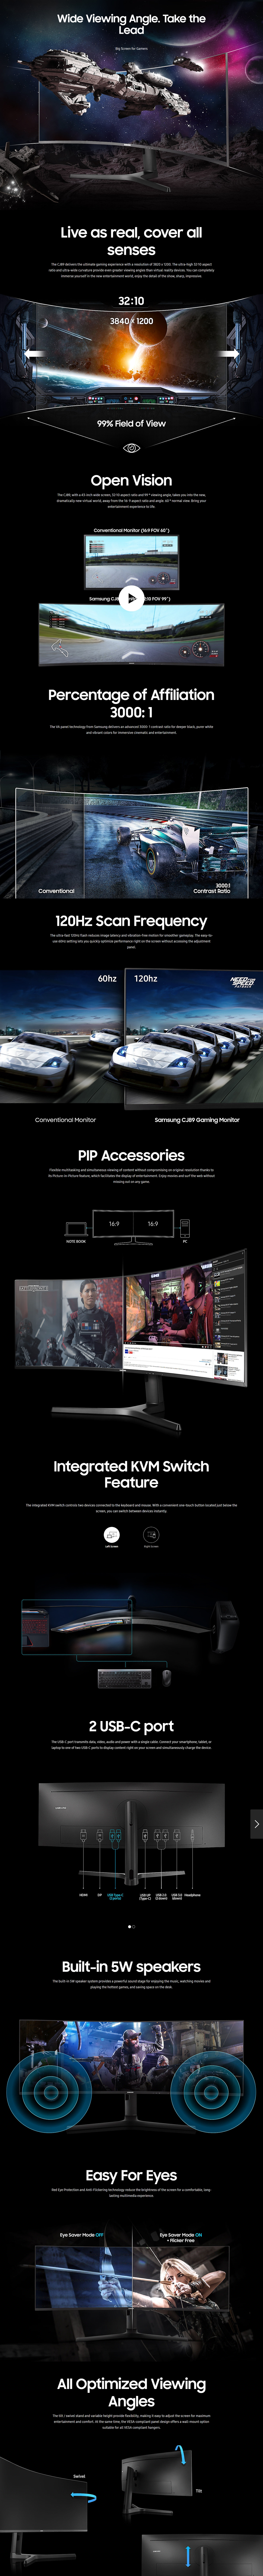 "A large marketing image providing additional information about the product Samsung CJ89 43"" Ultrawide Dual WUXGA Curved 120Hz 5MS VA LED Gaming Monitor - Additional alt info not provided"